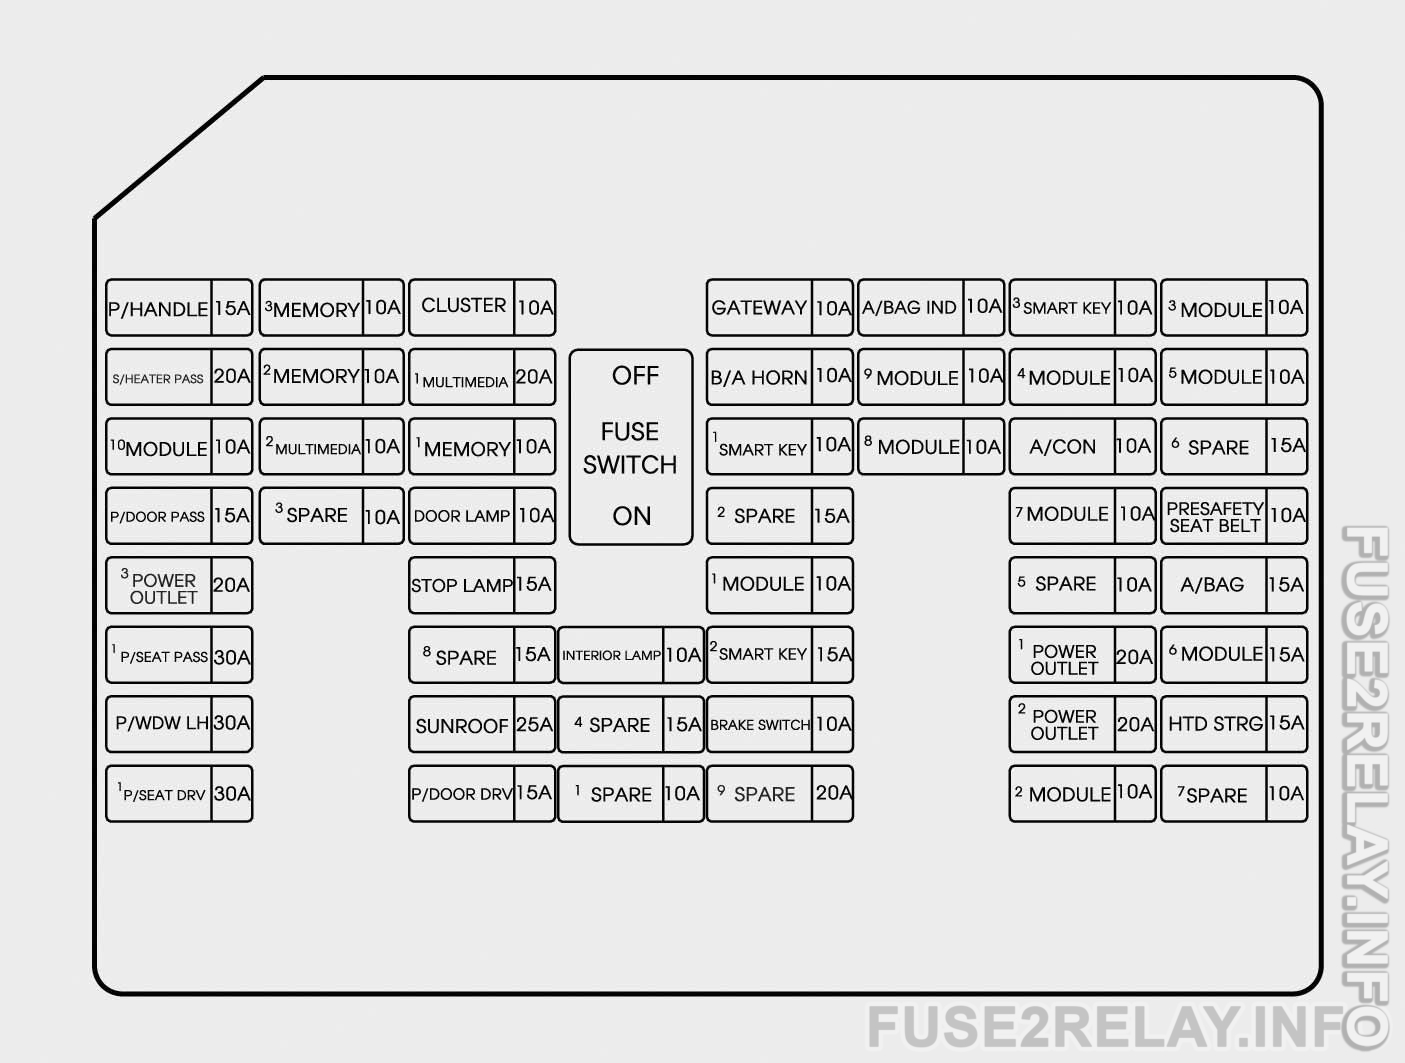 Hyundai Genesis (2015 - 2016) fuse relay box diagram